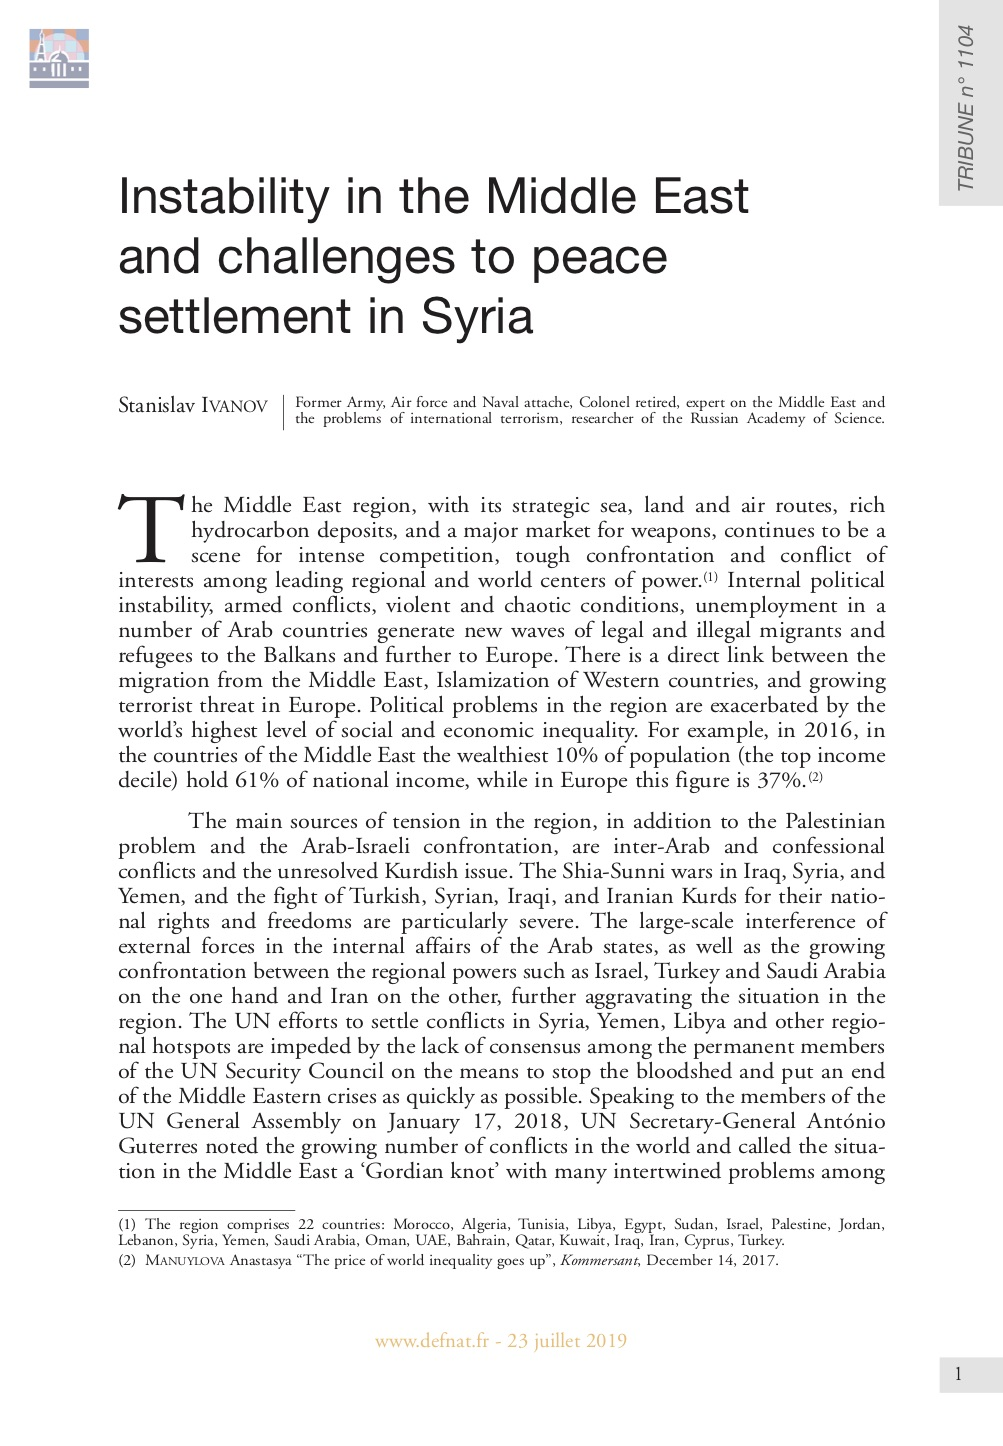 Instability in the Middle East region and challenges to peace settlement in Syria (T 1104)